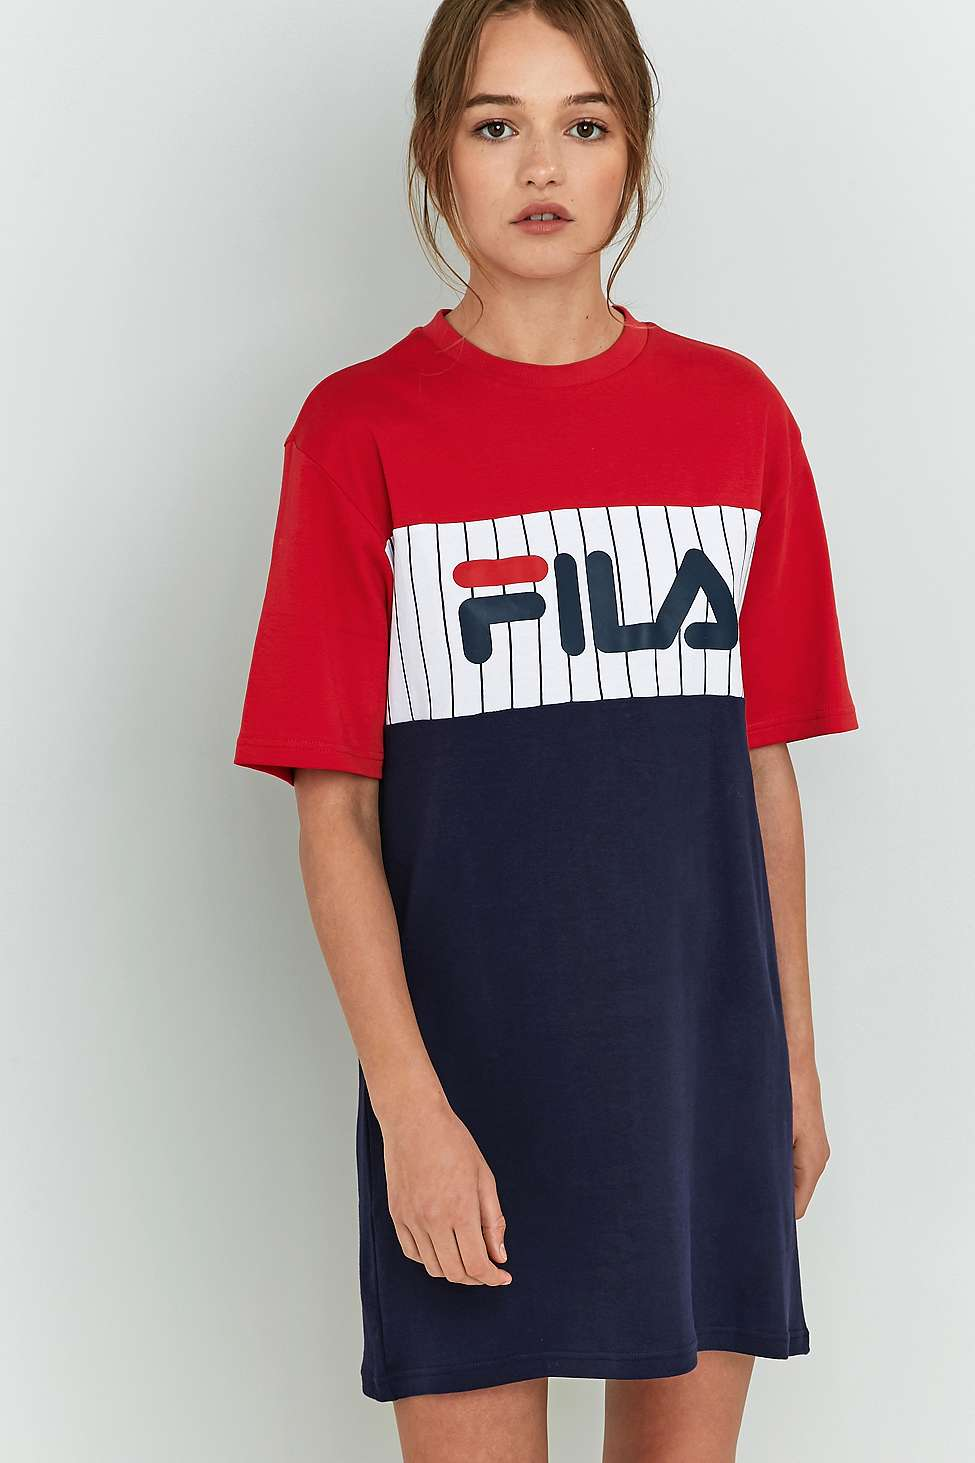 2522b401b1299f FILA Ruby T-Shirt Dress on ShopperBoard